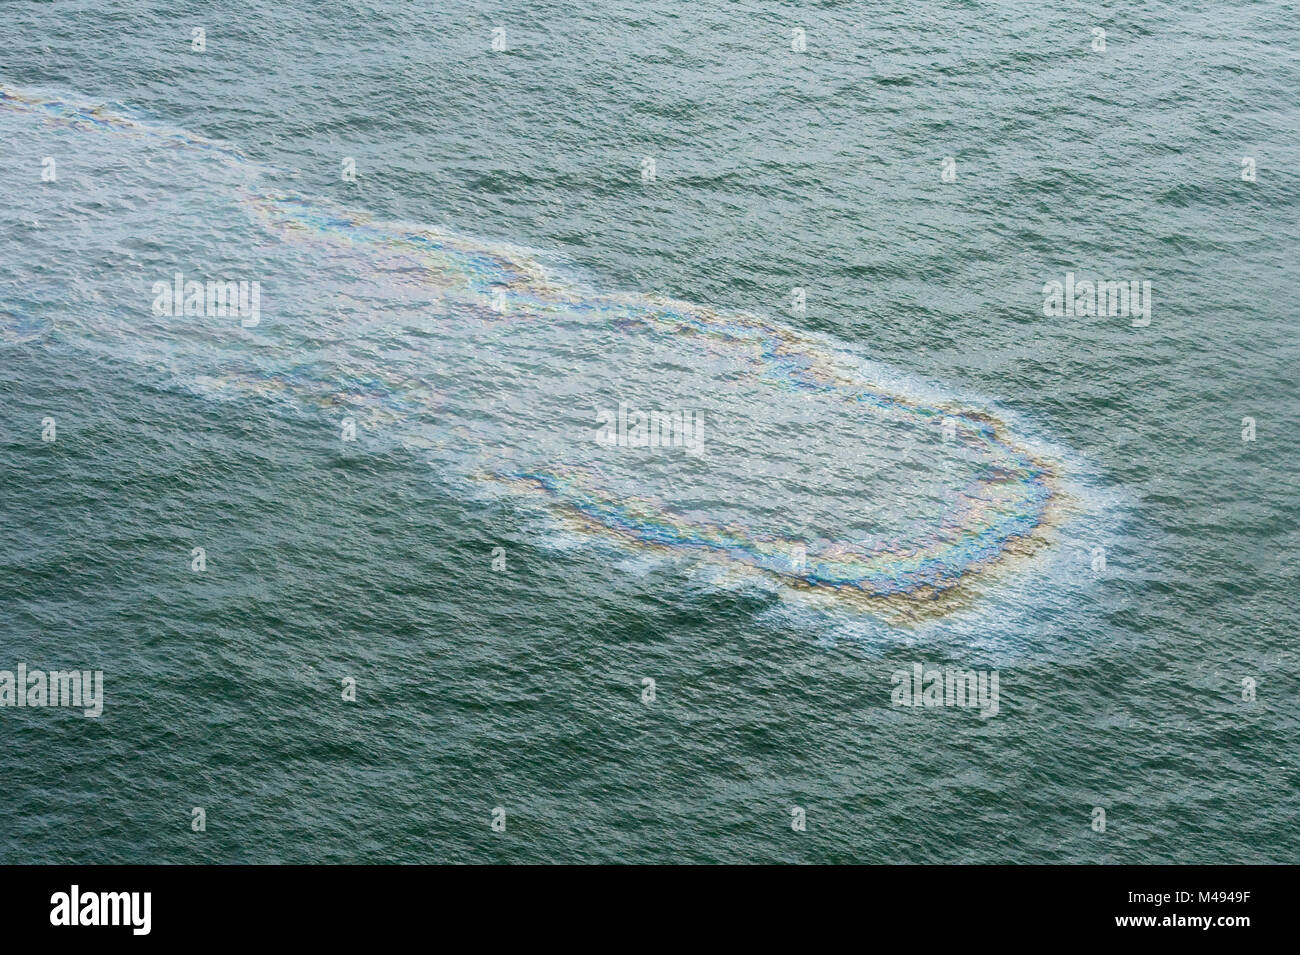 Aerial view of oil on surface of the sea during the Deepwater Horizon oil spill, Louisiana, Gulf of Mexico, USA, - Stock Image